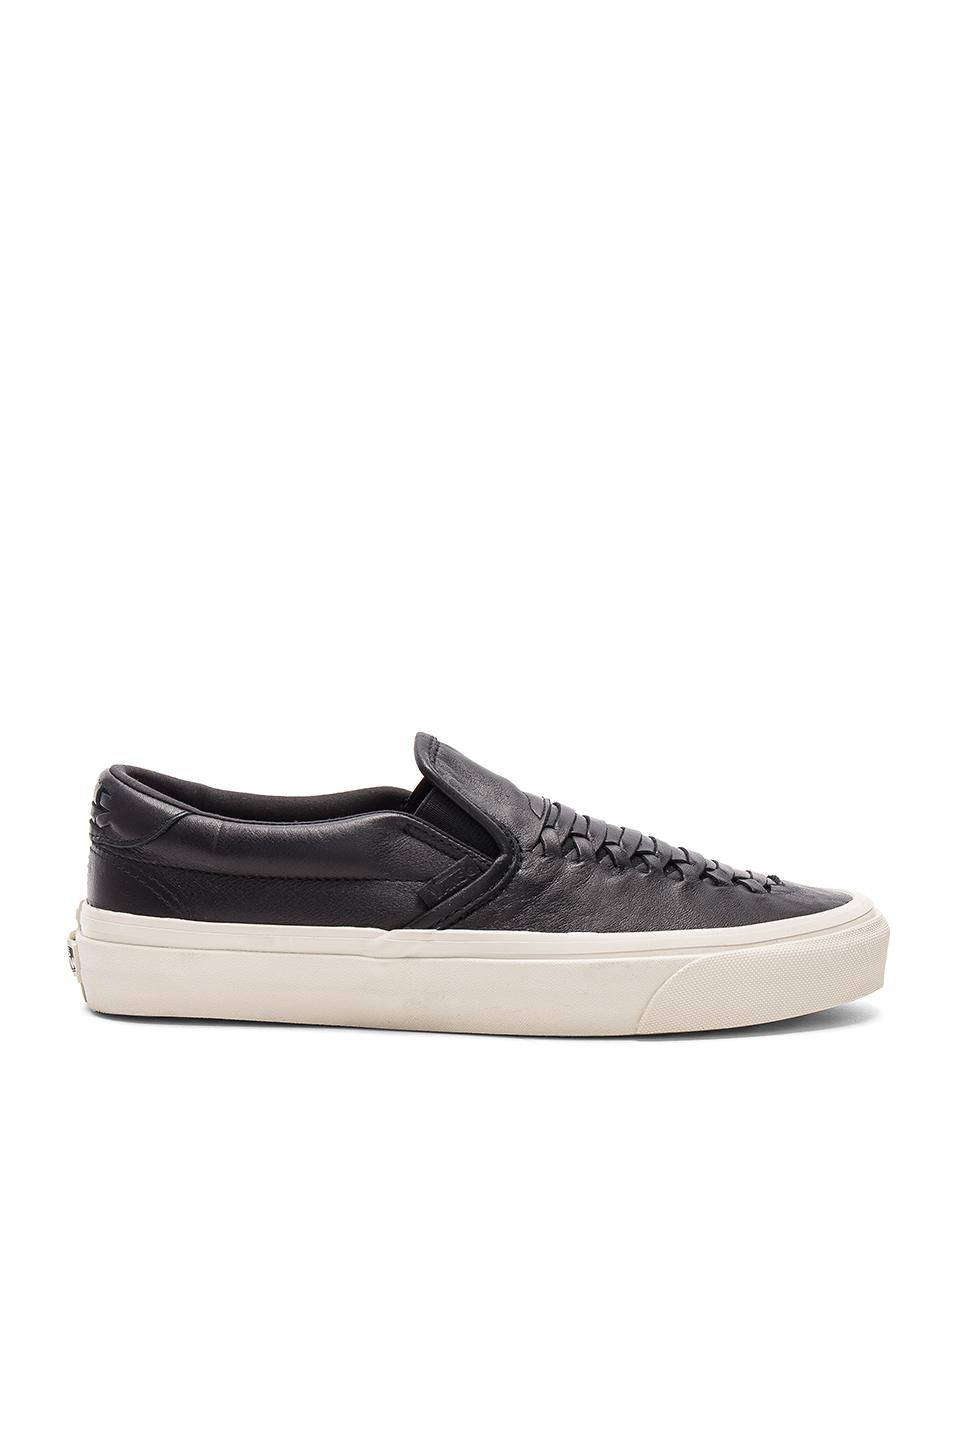 Leather Classic Slip On Dx Shoes